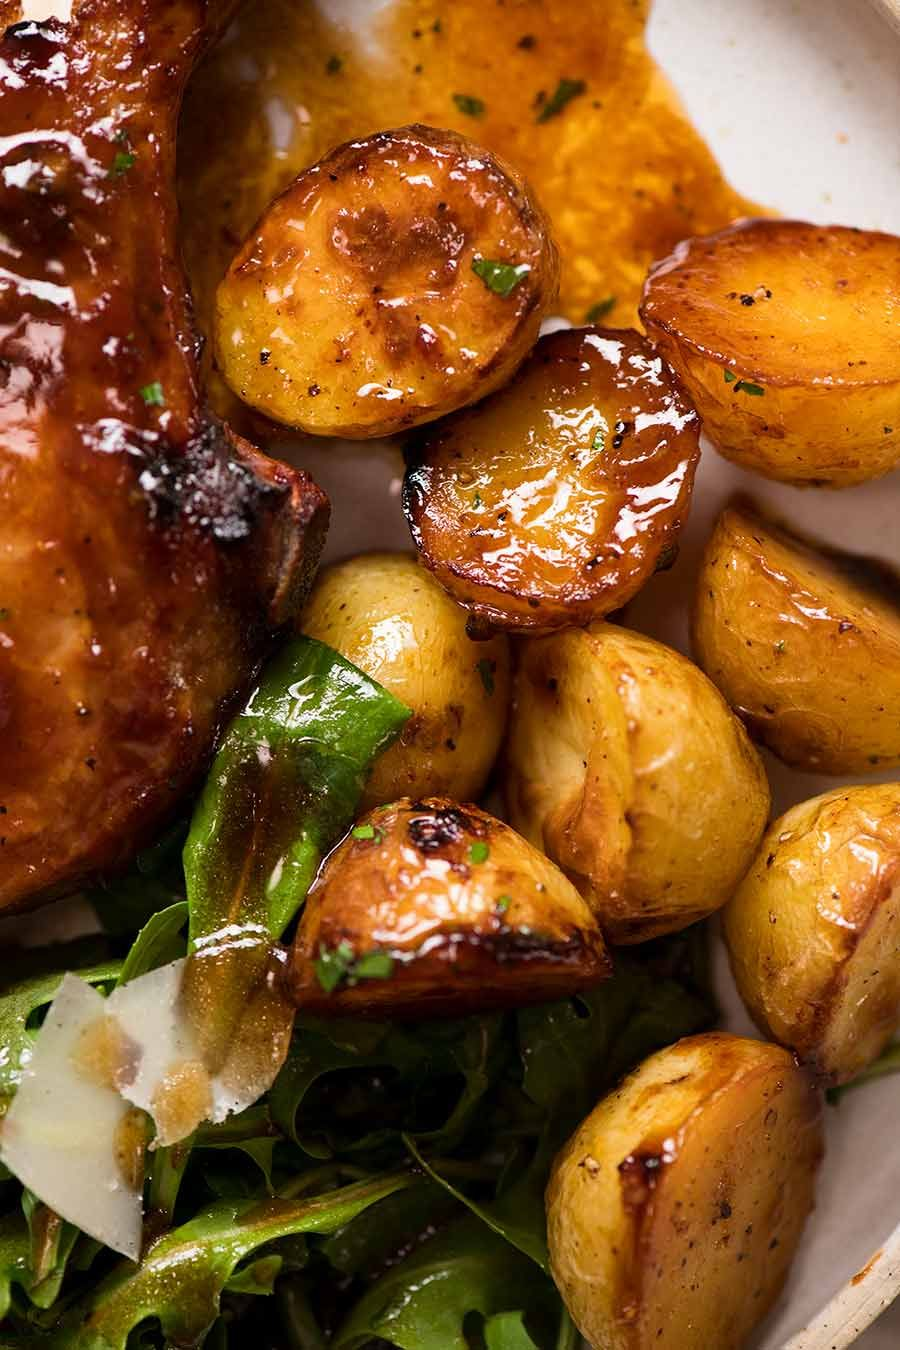 Some doctors recommend pork as an alternative to beef, so when you're trying to minimize the amount of red meat you consume each week, pork chops are a versatile meat choice that makes. Oven Baked Pork Chops With Potatoes Recipe Pork Chop Recipes Baked Baked Pork Chops Oven Baked Pork